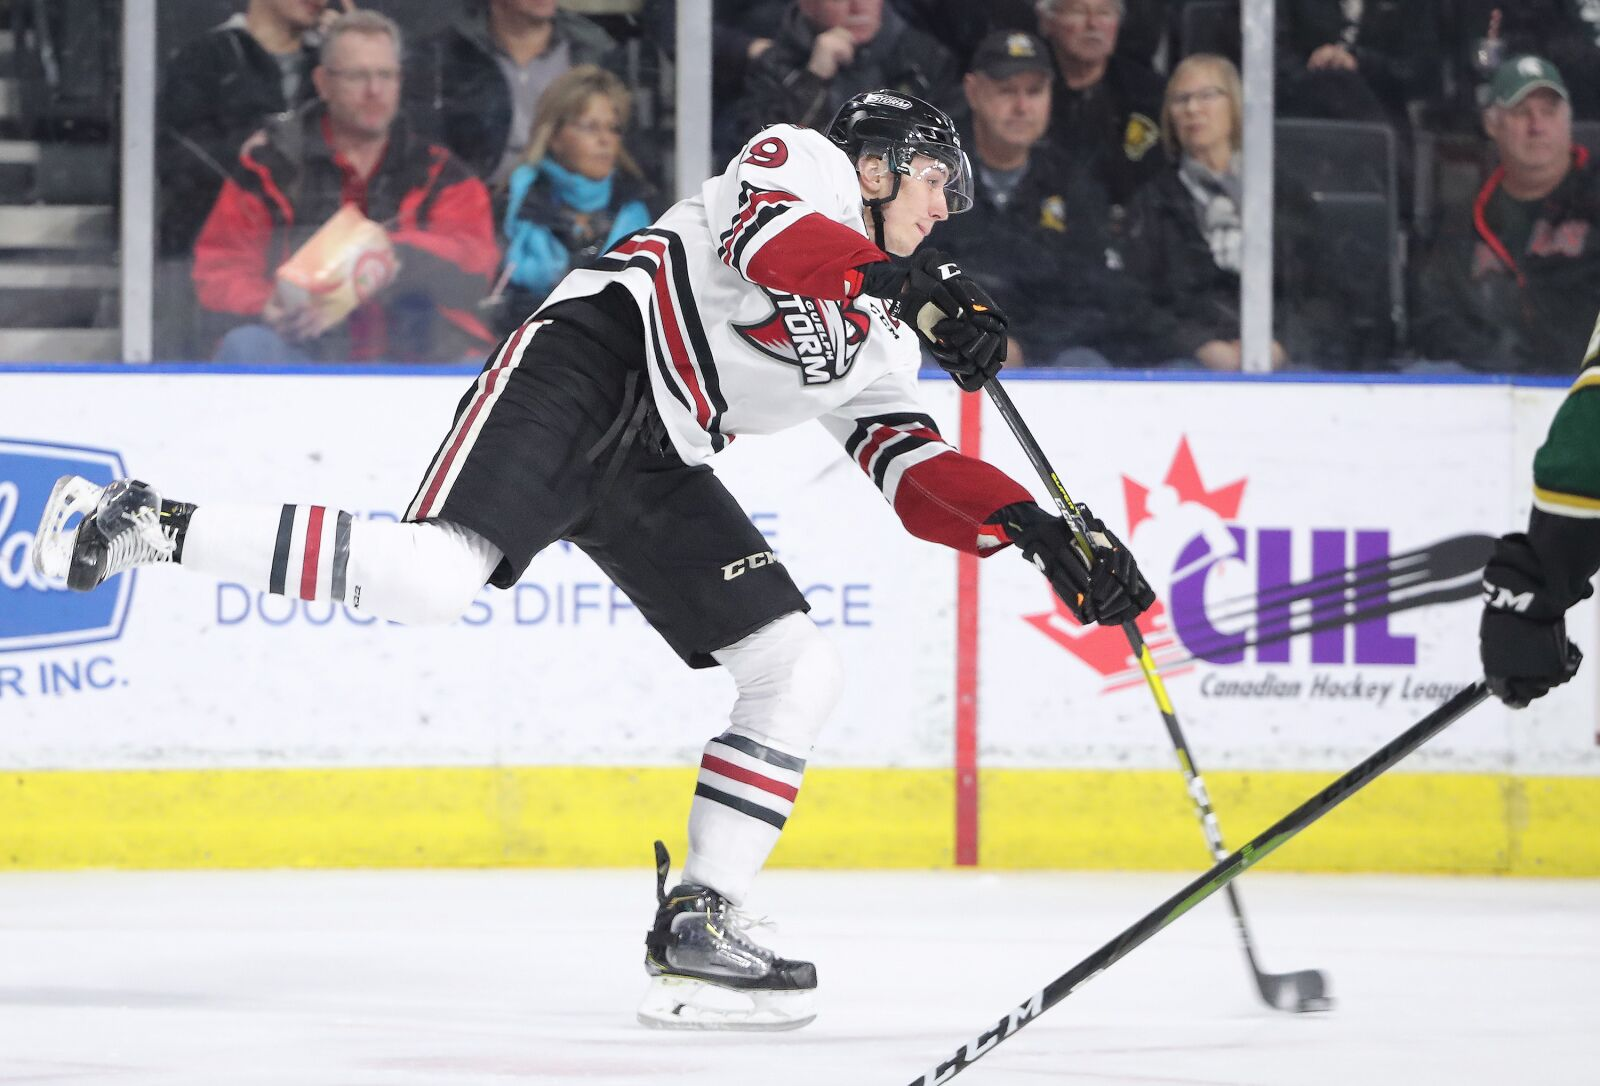 Philadelphia Flyers: Isaac Ratcliffe, Guelph Eliminated From Memorial Cup